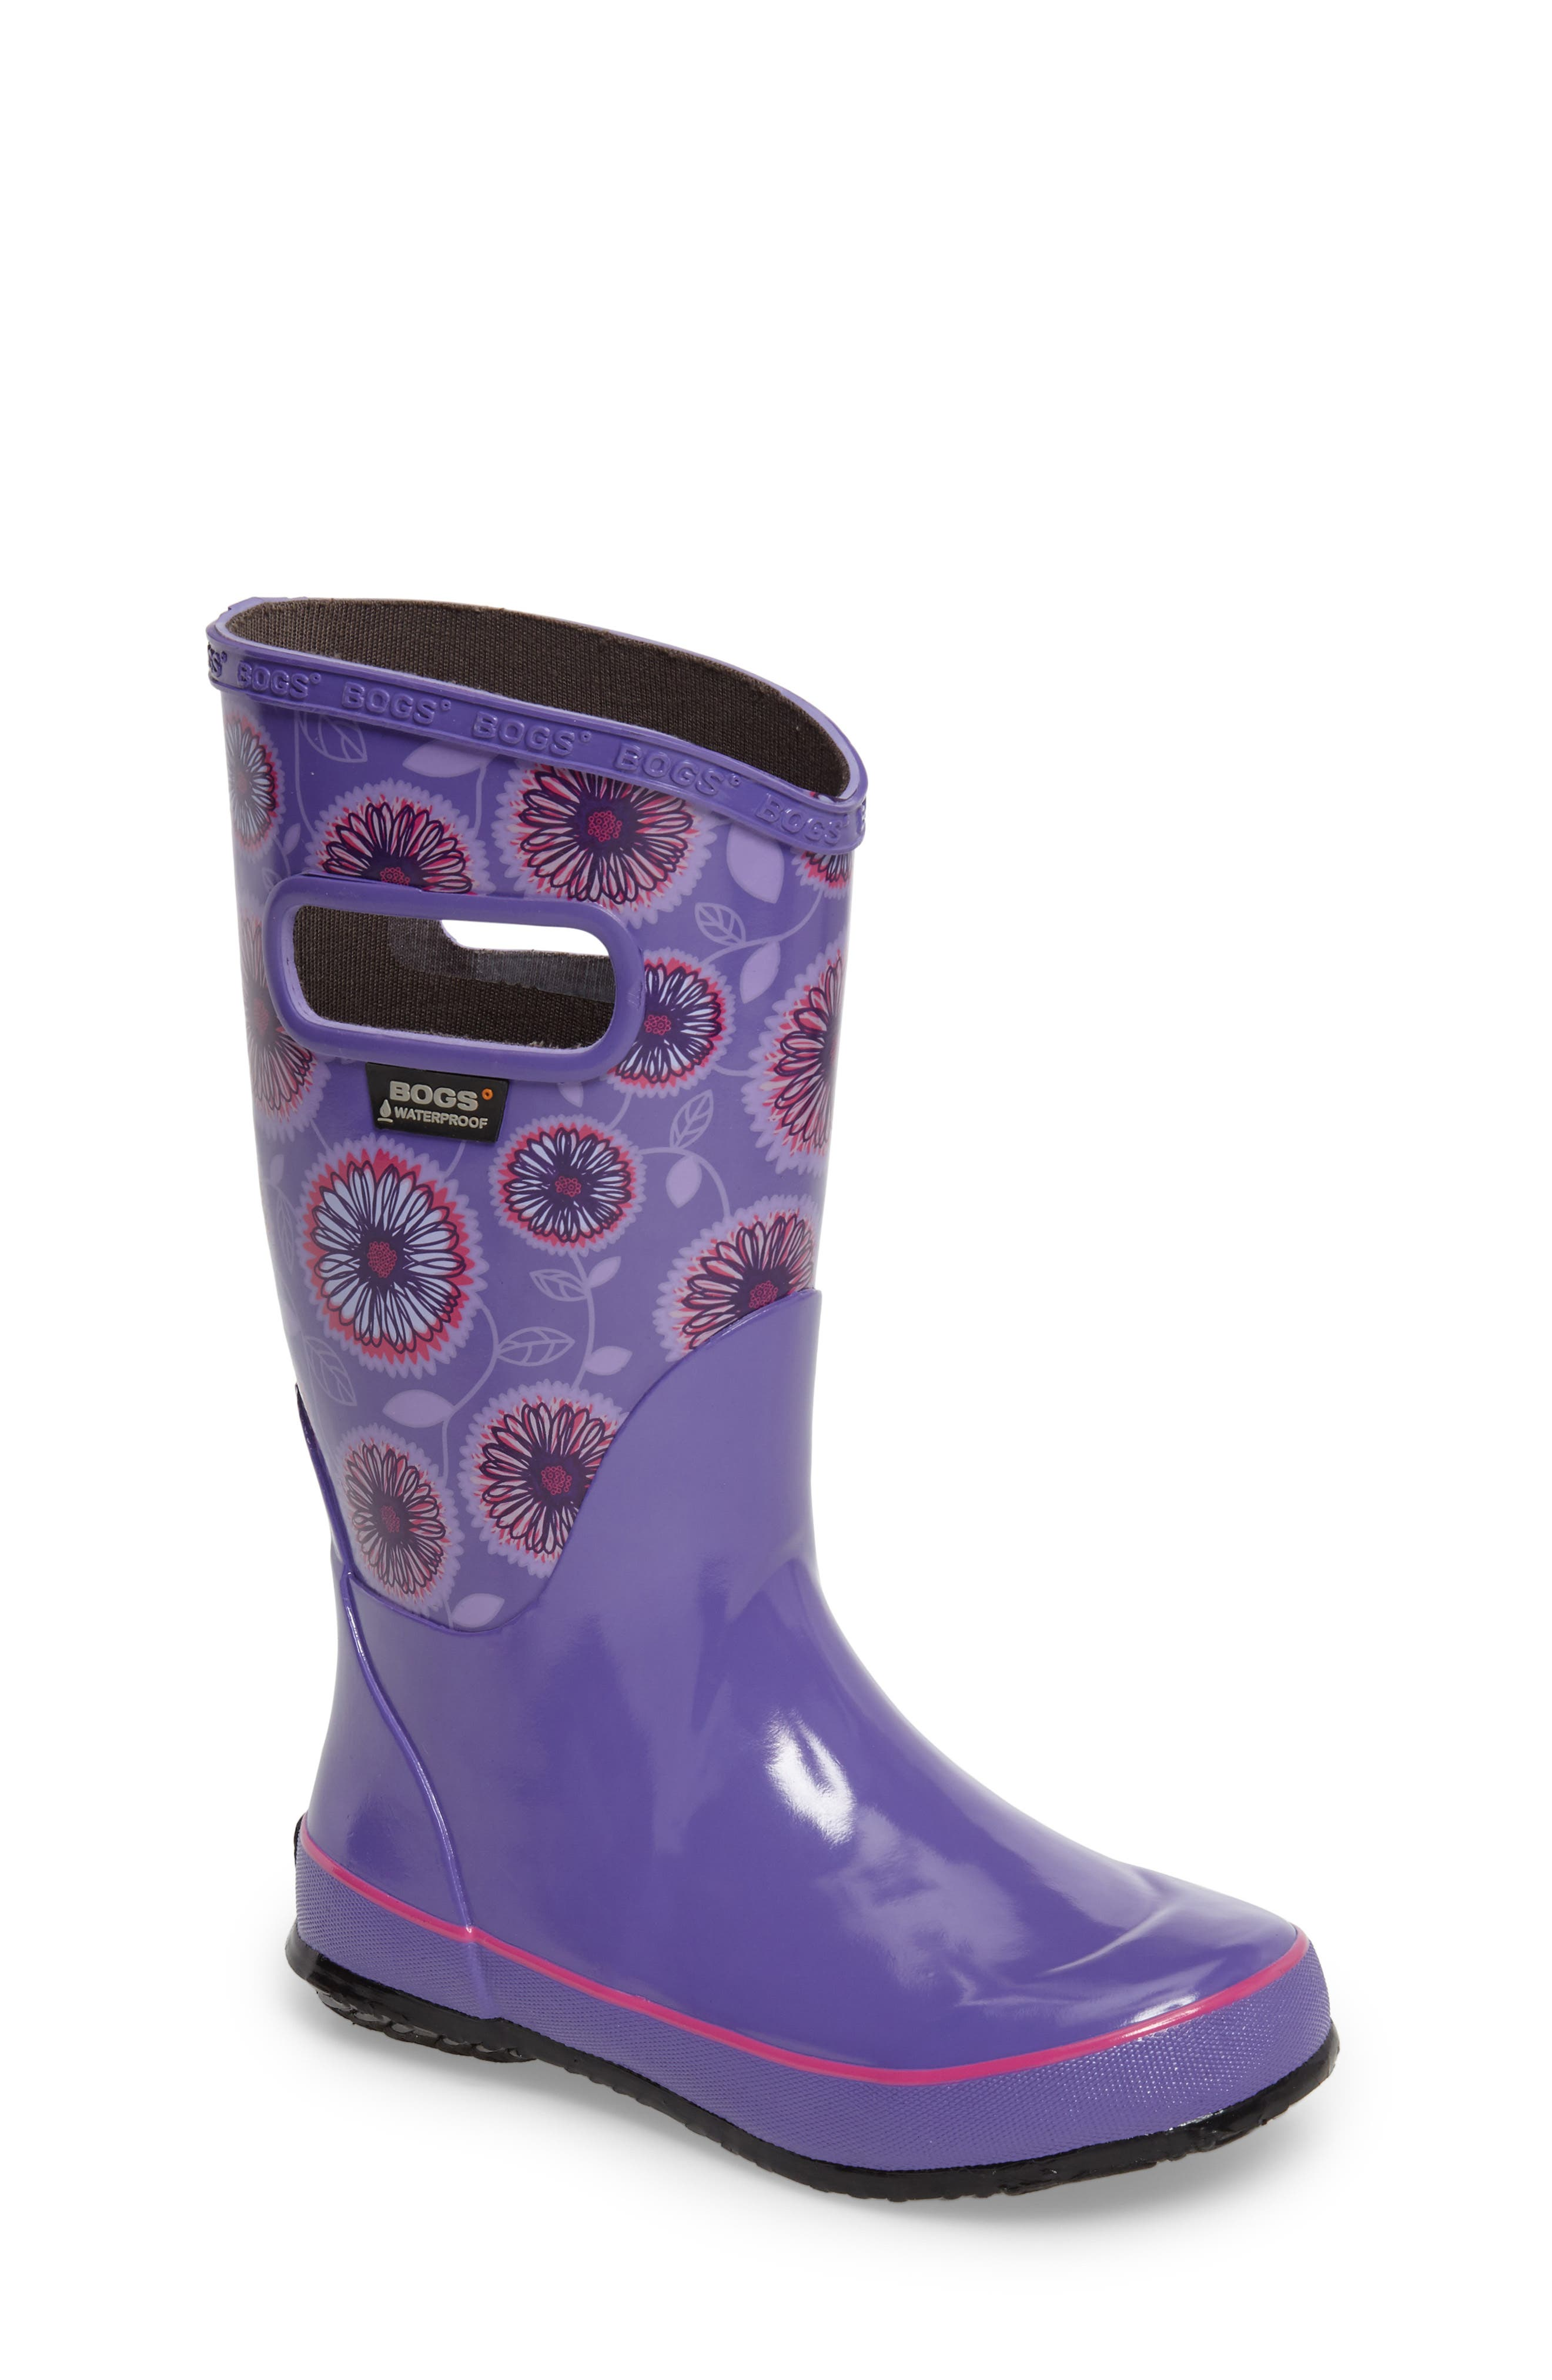 Wildflowers Rubber Rain Boot,                             Main thumbnail 1, color,                             Violet Multi